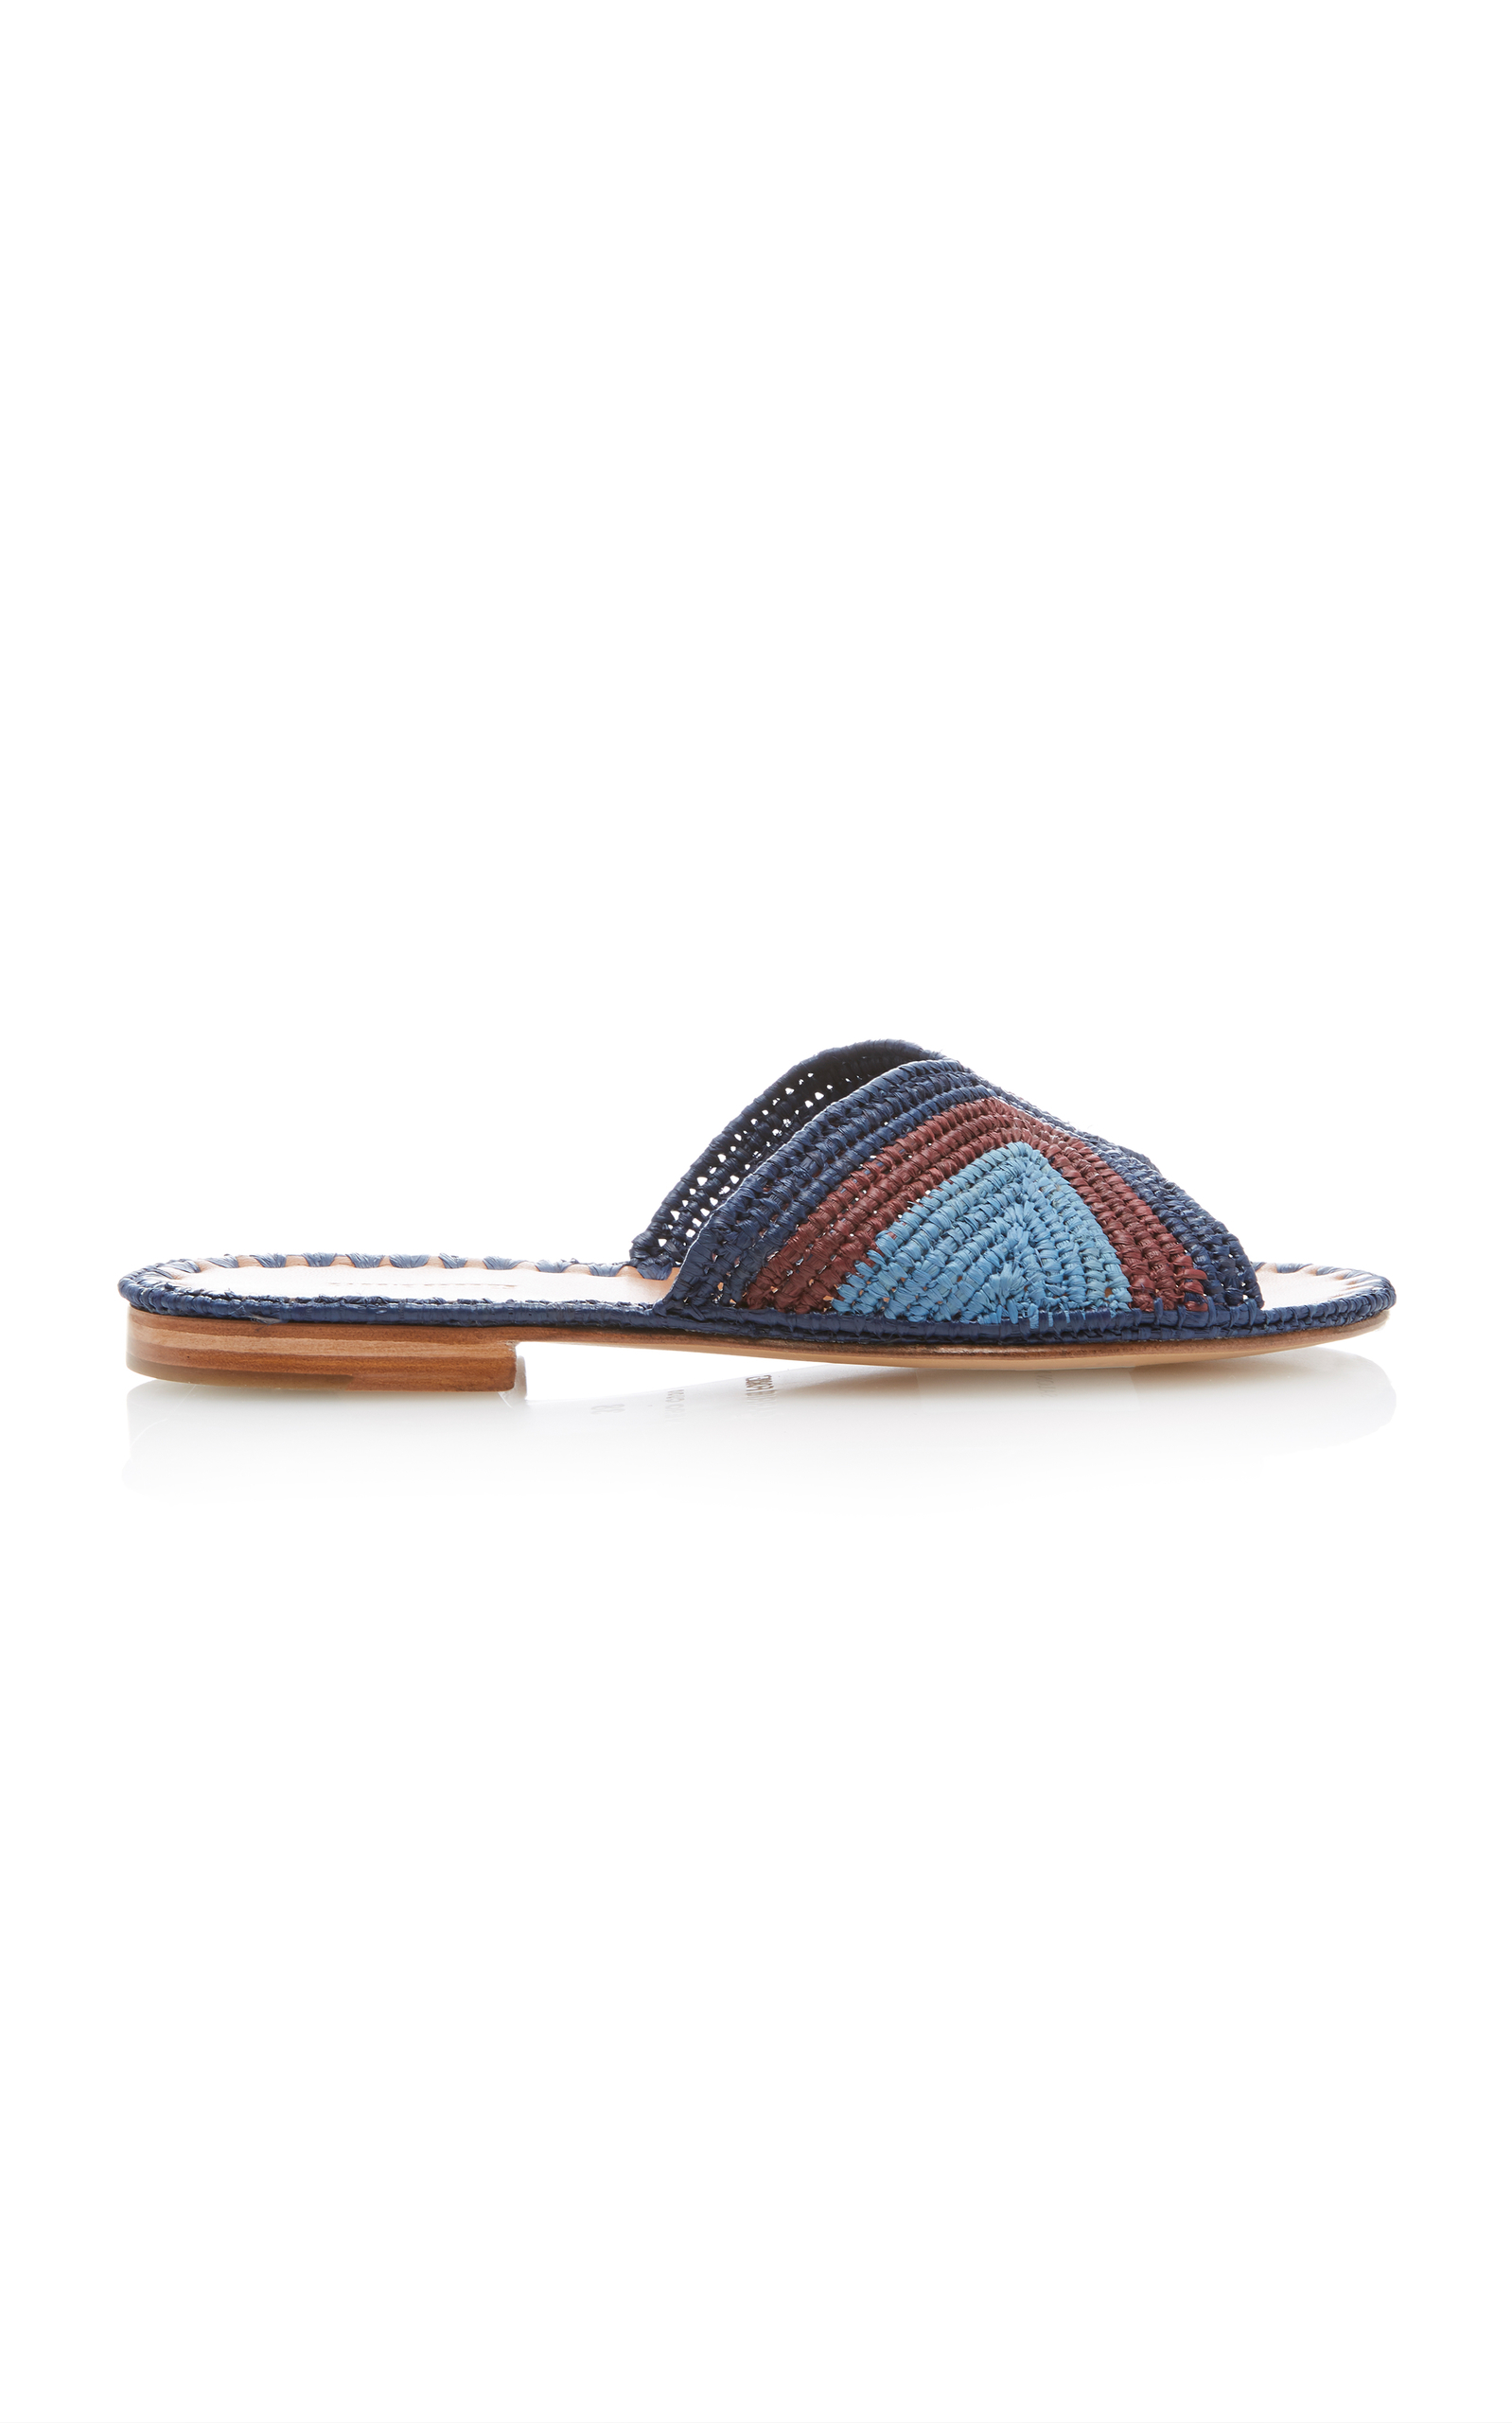 CARRIE FORBES Salon Coloree Slides in Blue